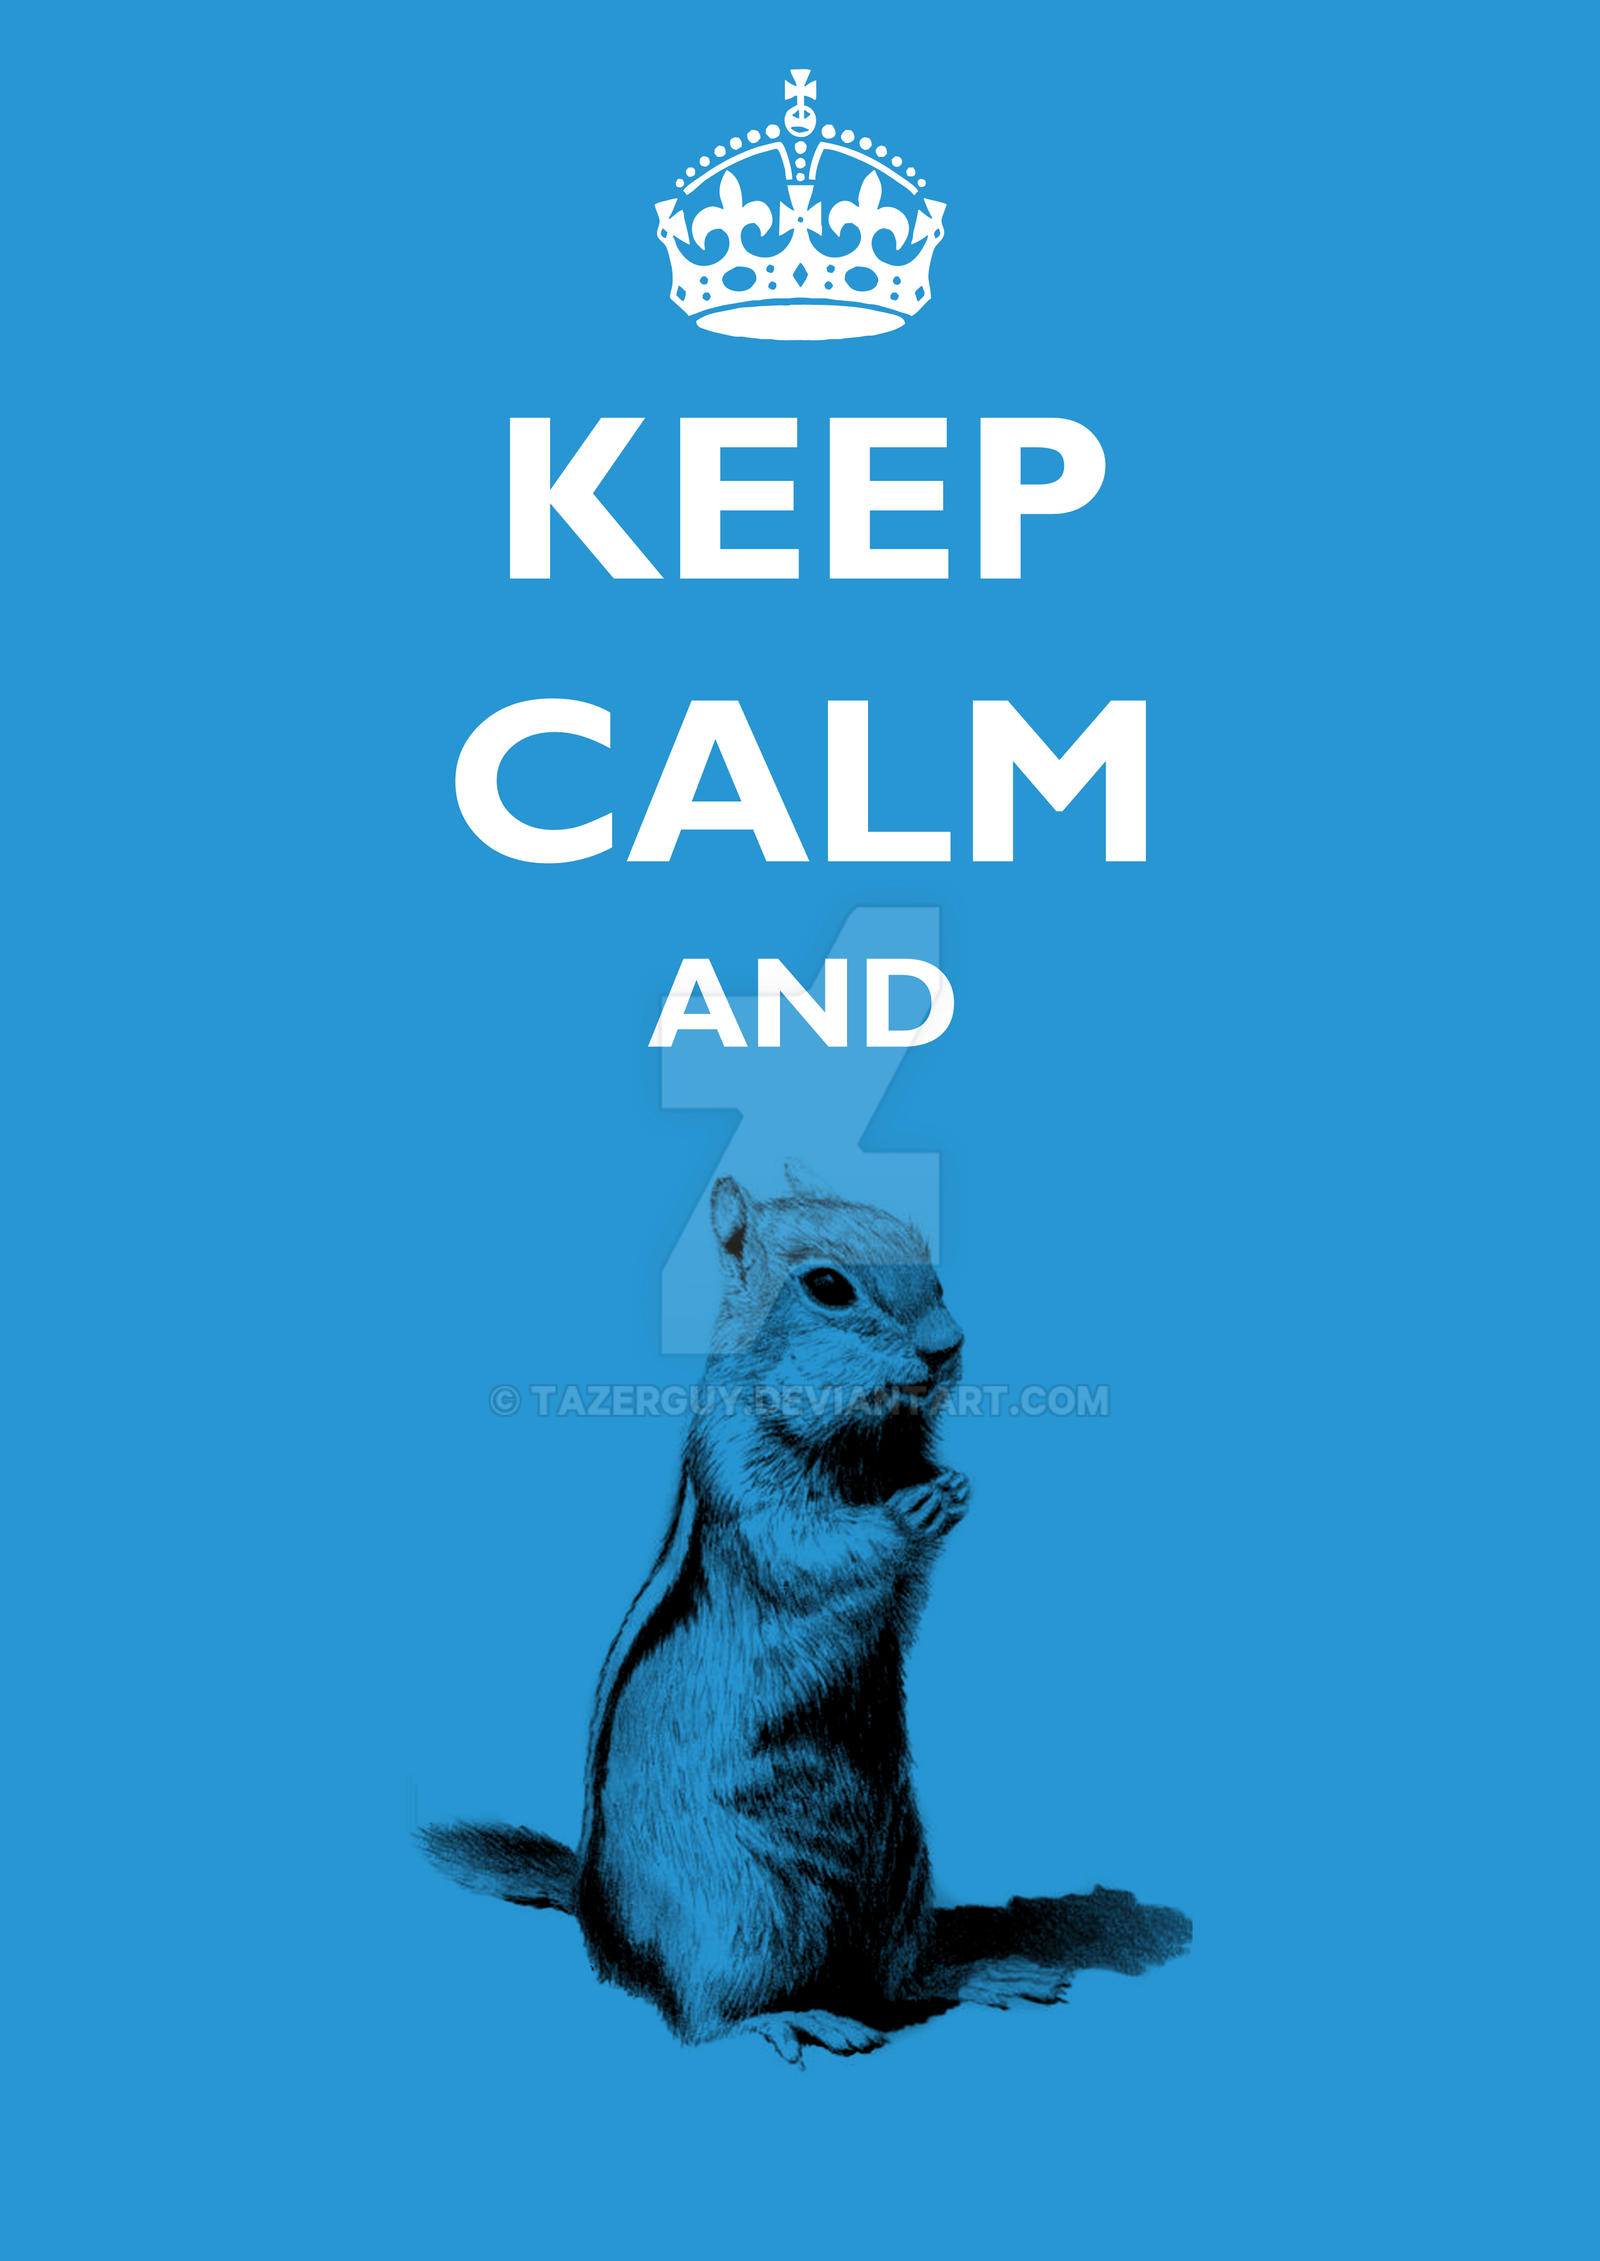 Keep Calm and... Squirrel by tazerguy